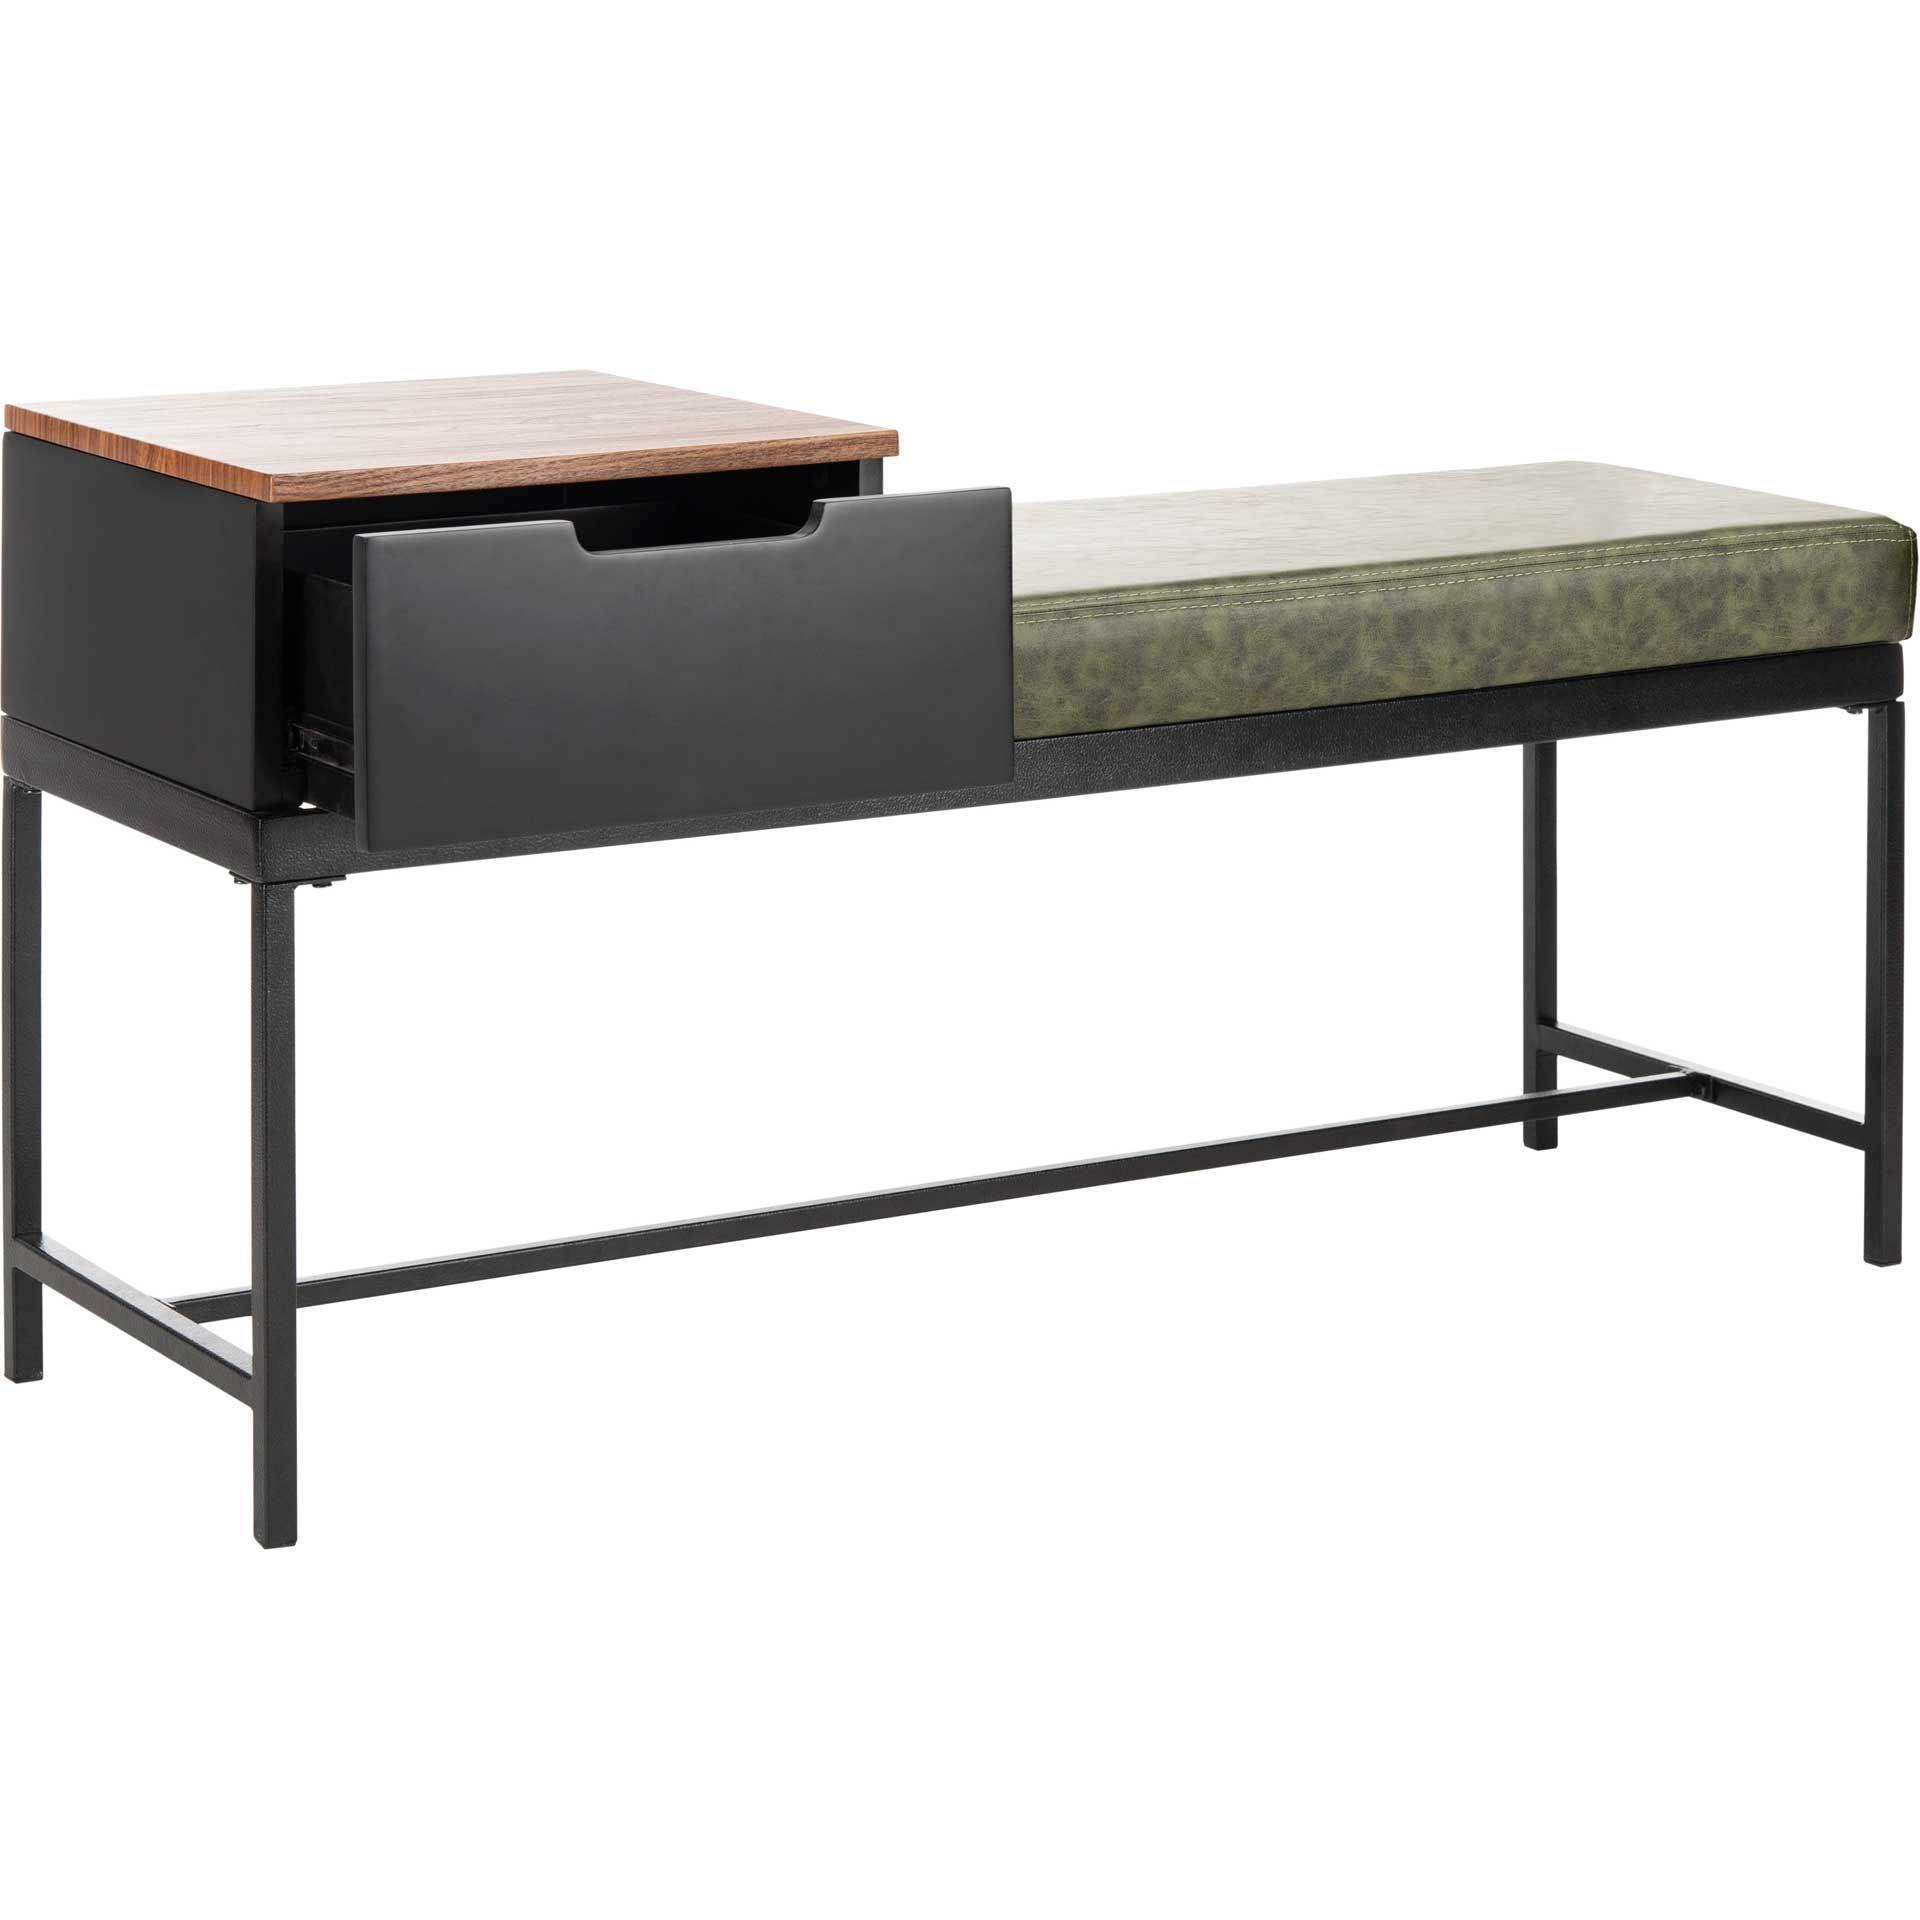 Maxton Bench With Storage Gray Wash/Dark Green